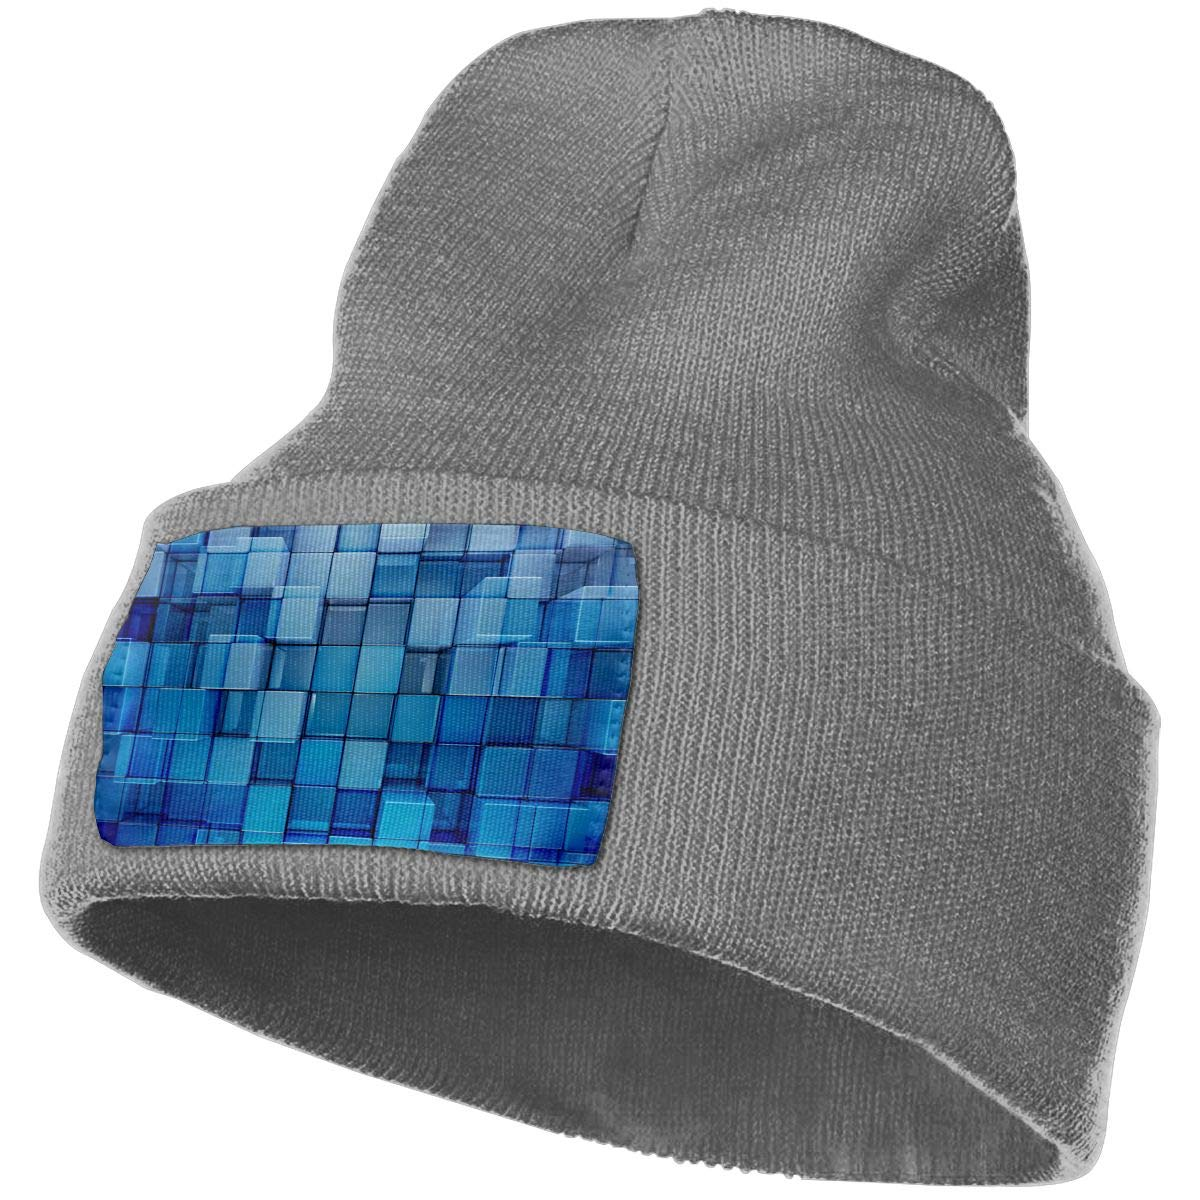 Deep Heather Beanie Hats 3d Cubes Knit Hedging Cap Slouchy Winter Warm Skull Caps For Men Womens